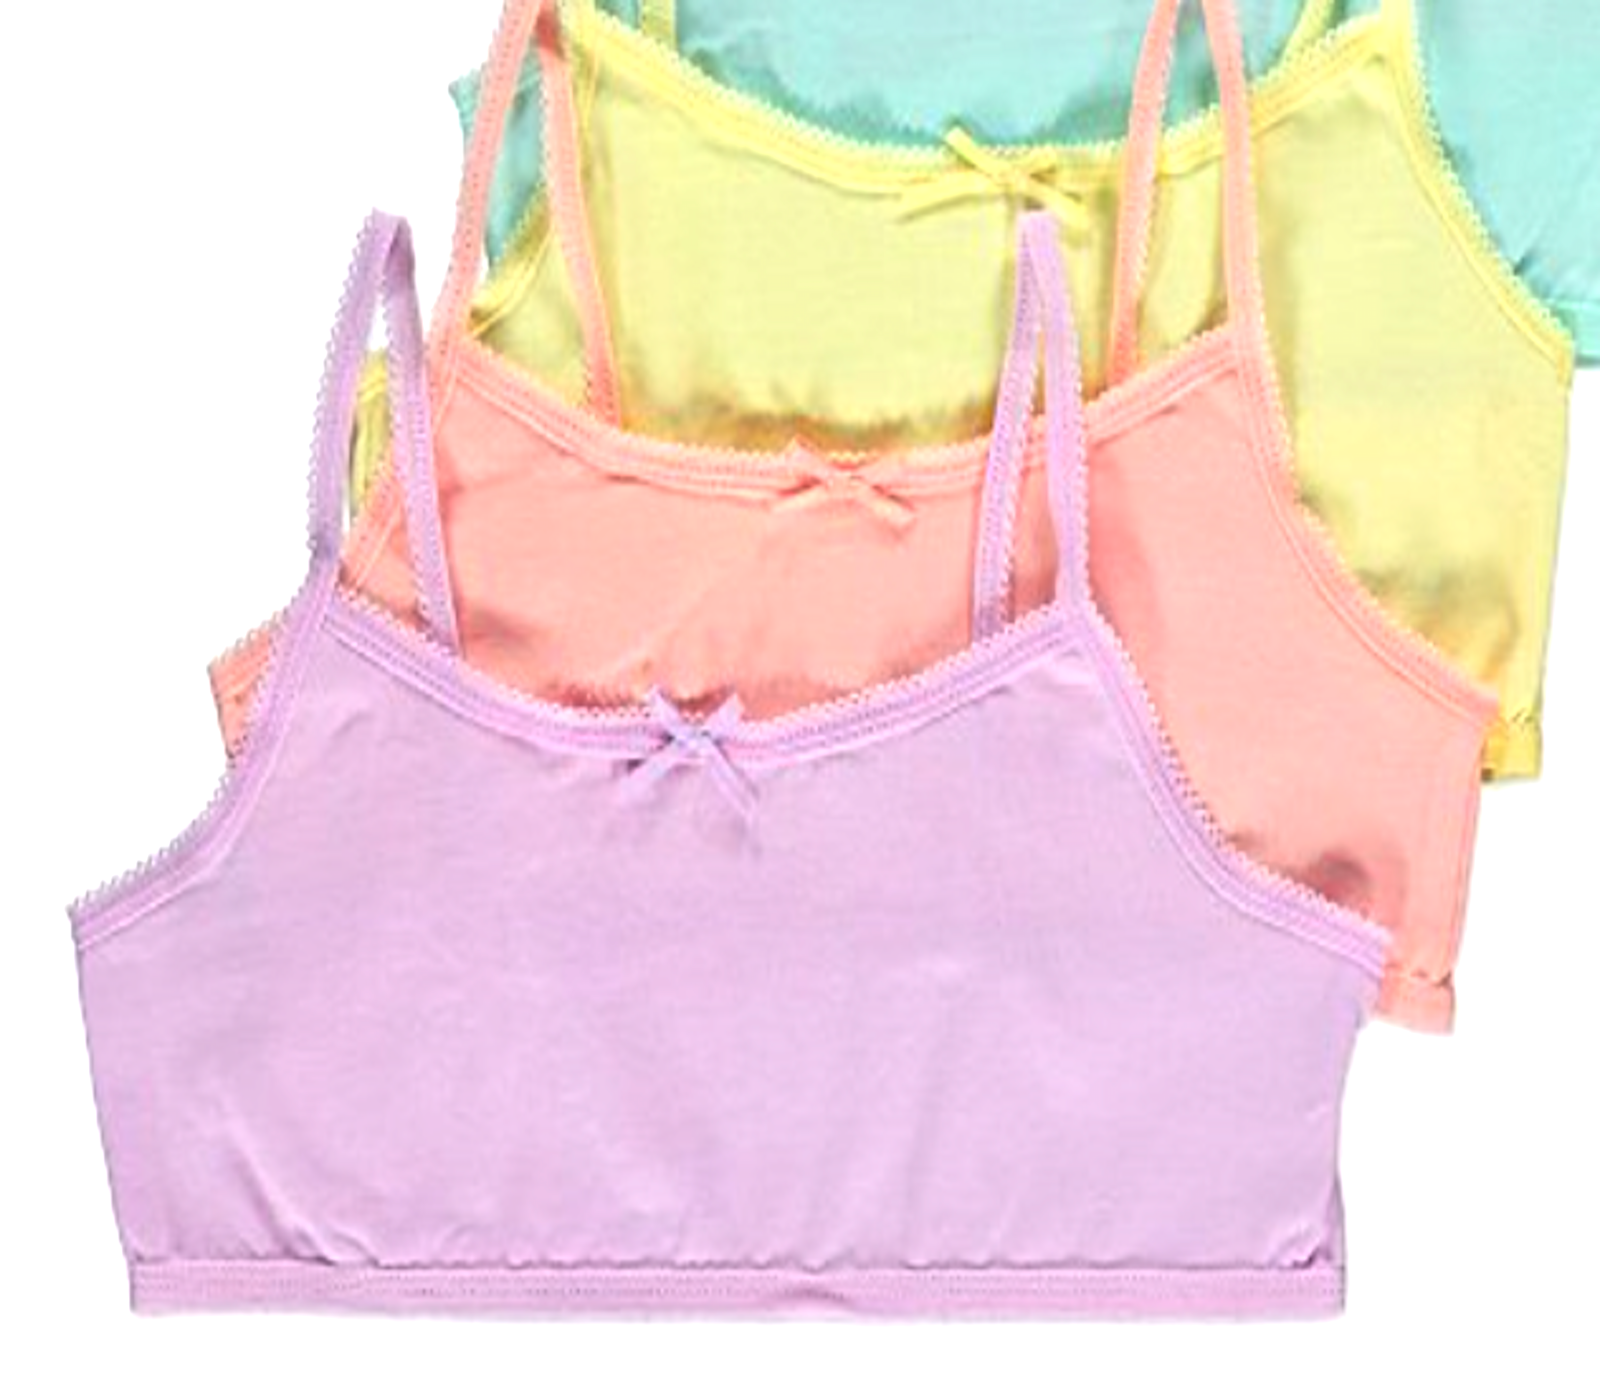 Kids Girls Sleeveless Short Crops, Camisoles 3 Vests Pack 100% Cotton 3 to 10YRS 4